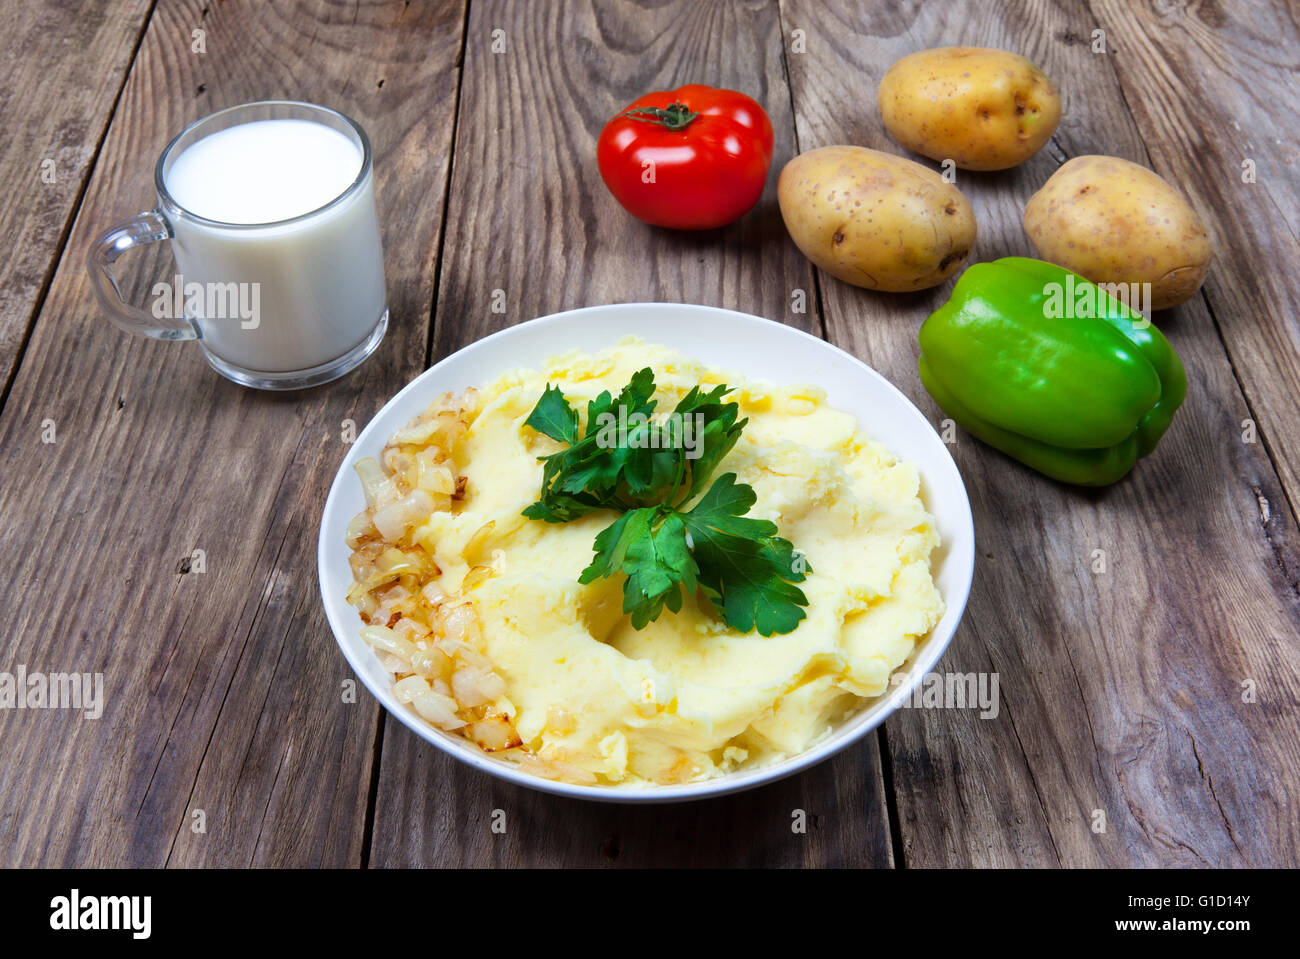 mashed boiled potato with herbs. milk and vegetables - Stock Image